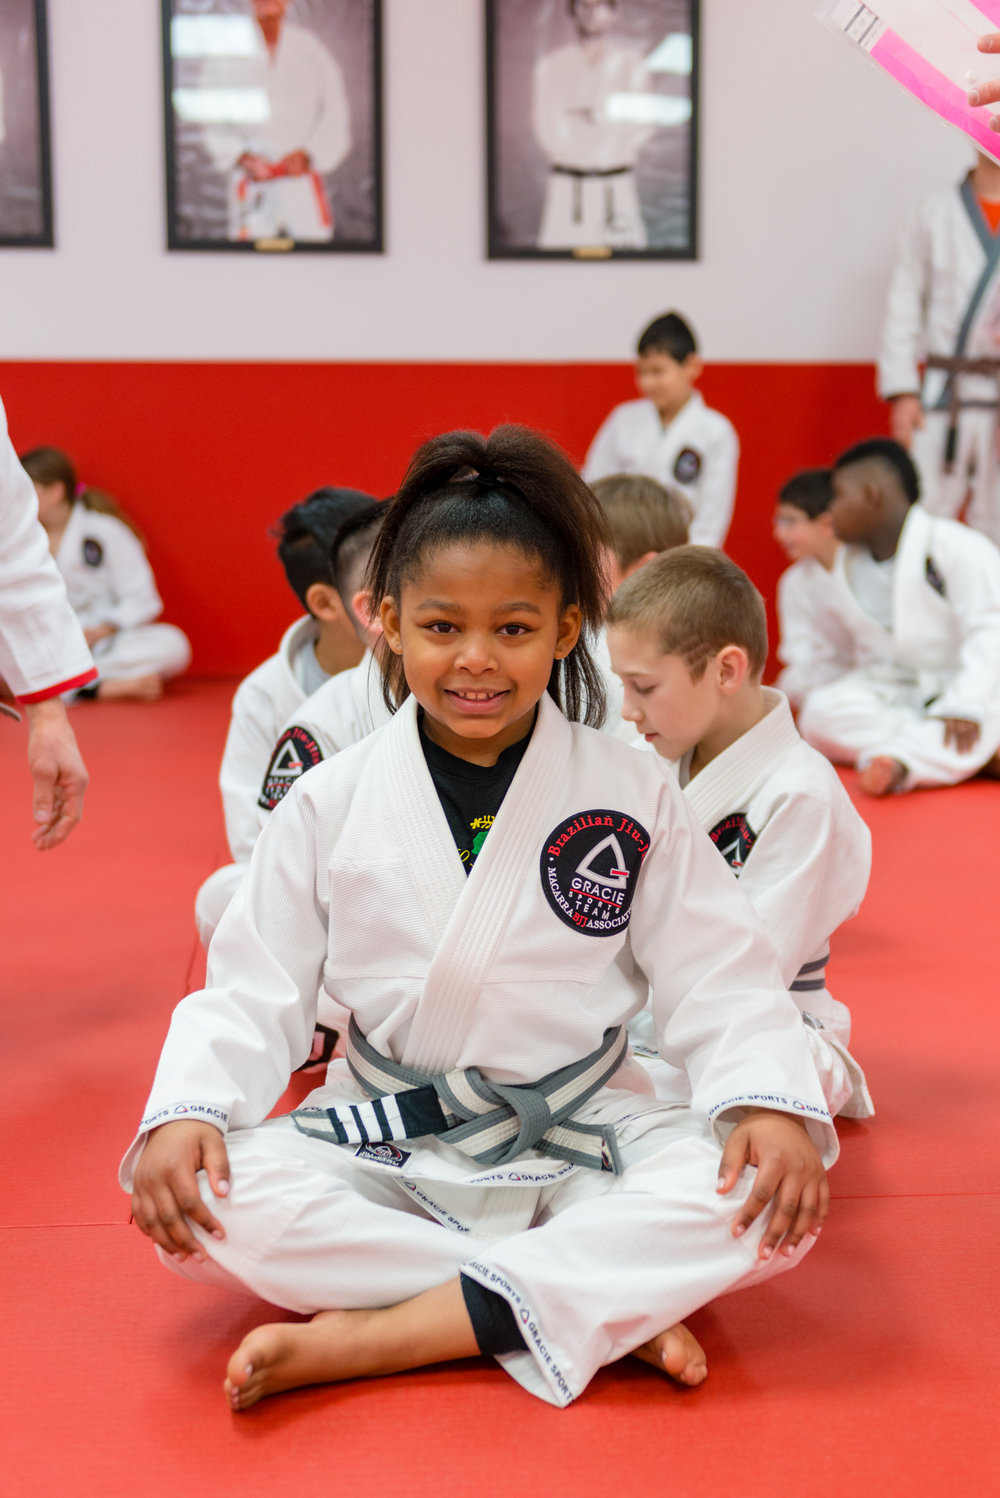 Gracie-Sports-Kids-2.jpg